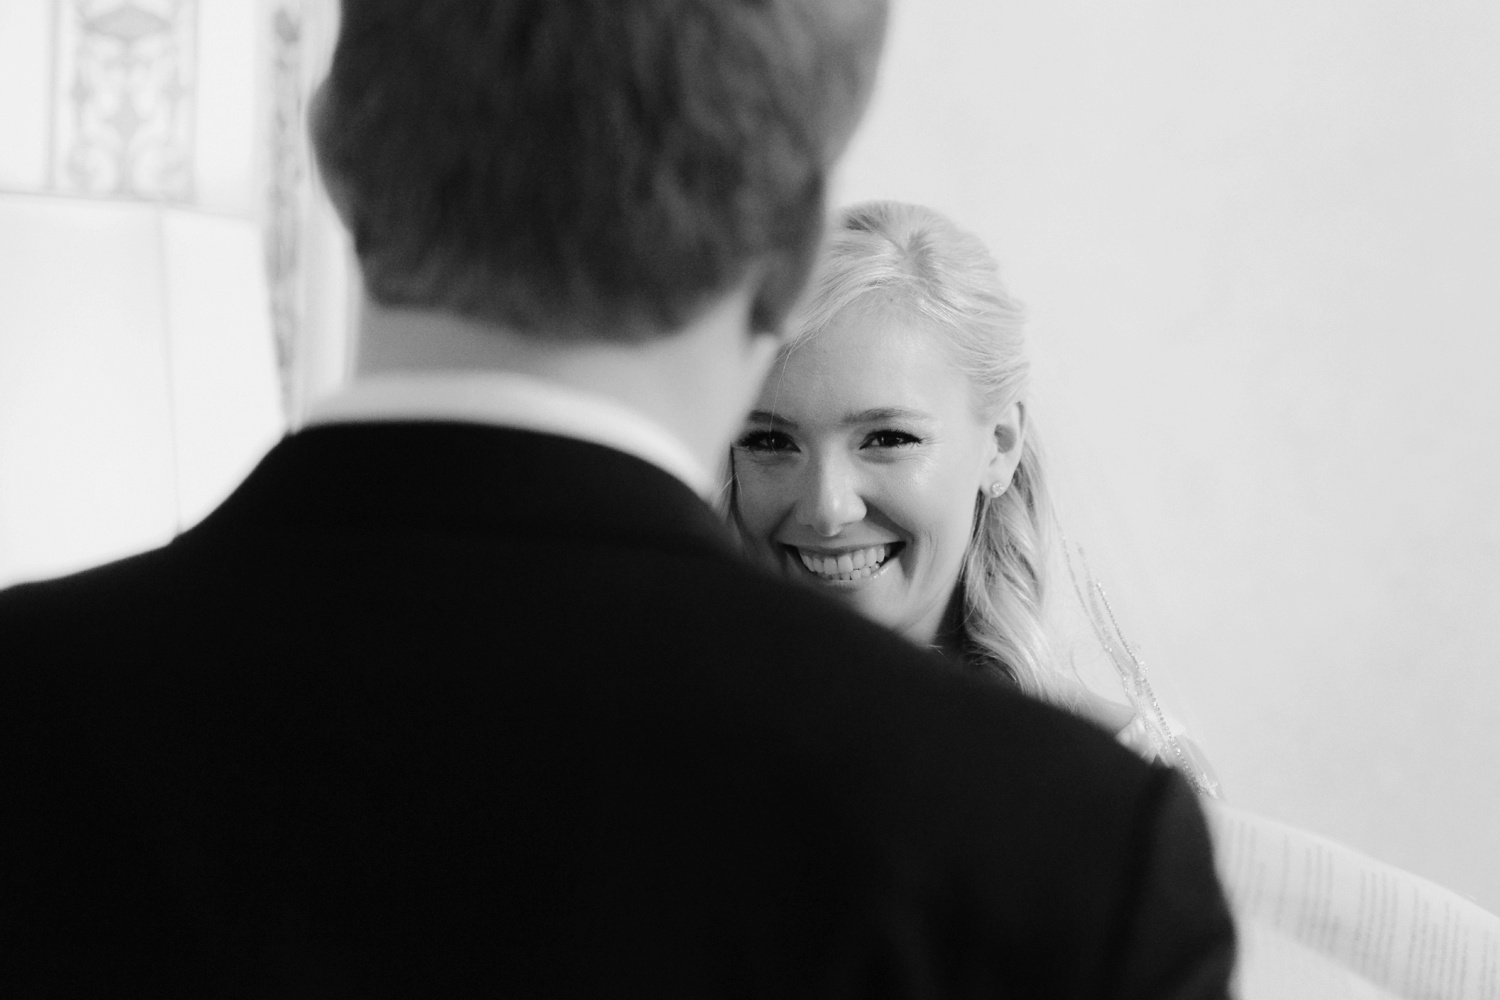 wedding-photographer-florence-fourseason-tuscany_1226.jpg